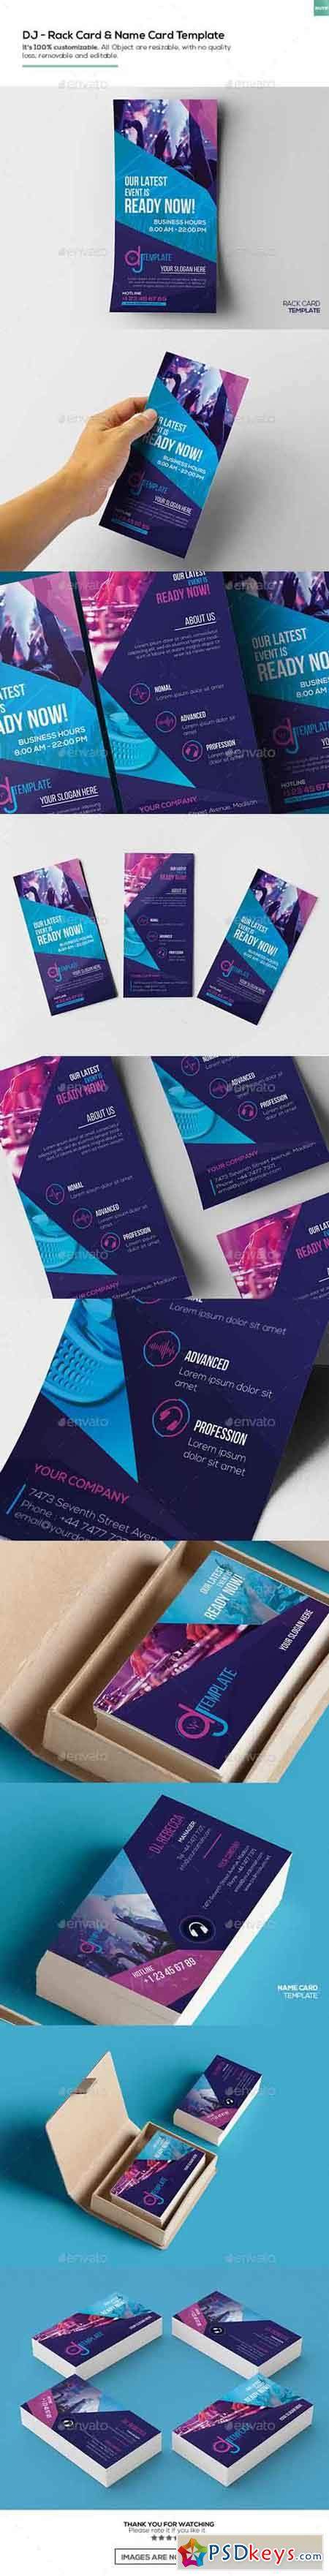 DJ Rack Card And Business Card Template Free Download - Rack card template photoshop